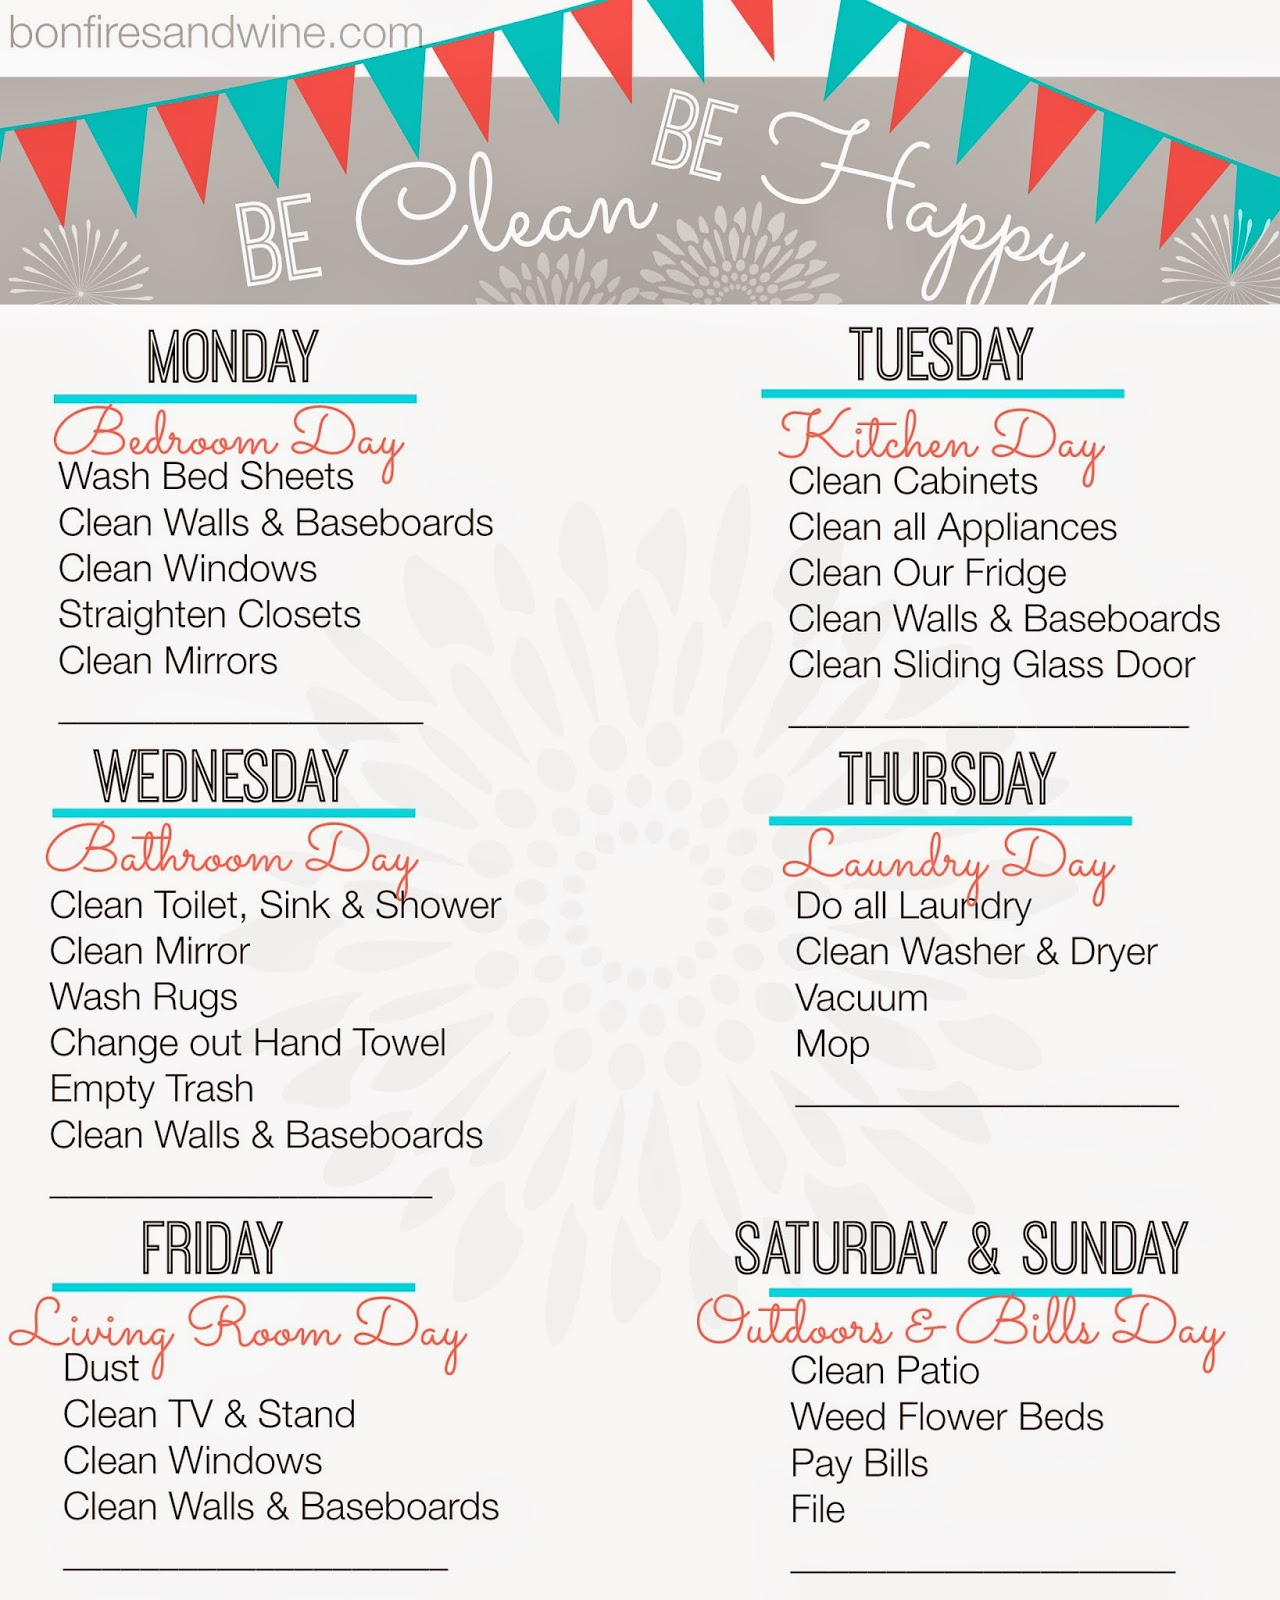 Massif image with regard to weekly cleaning schedule printable